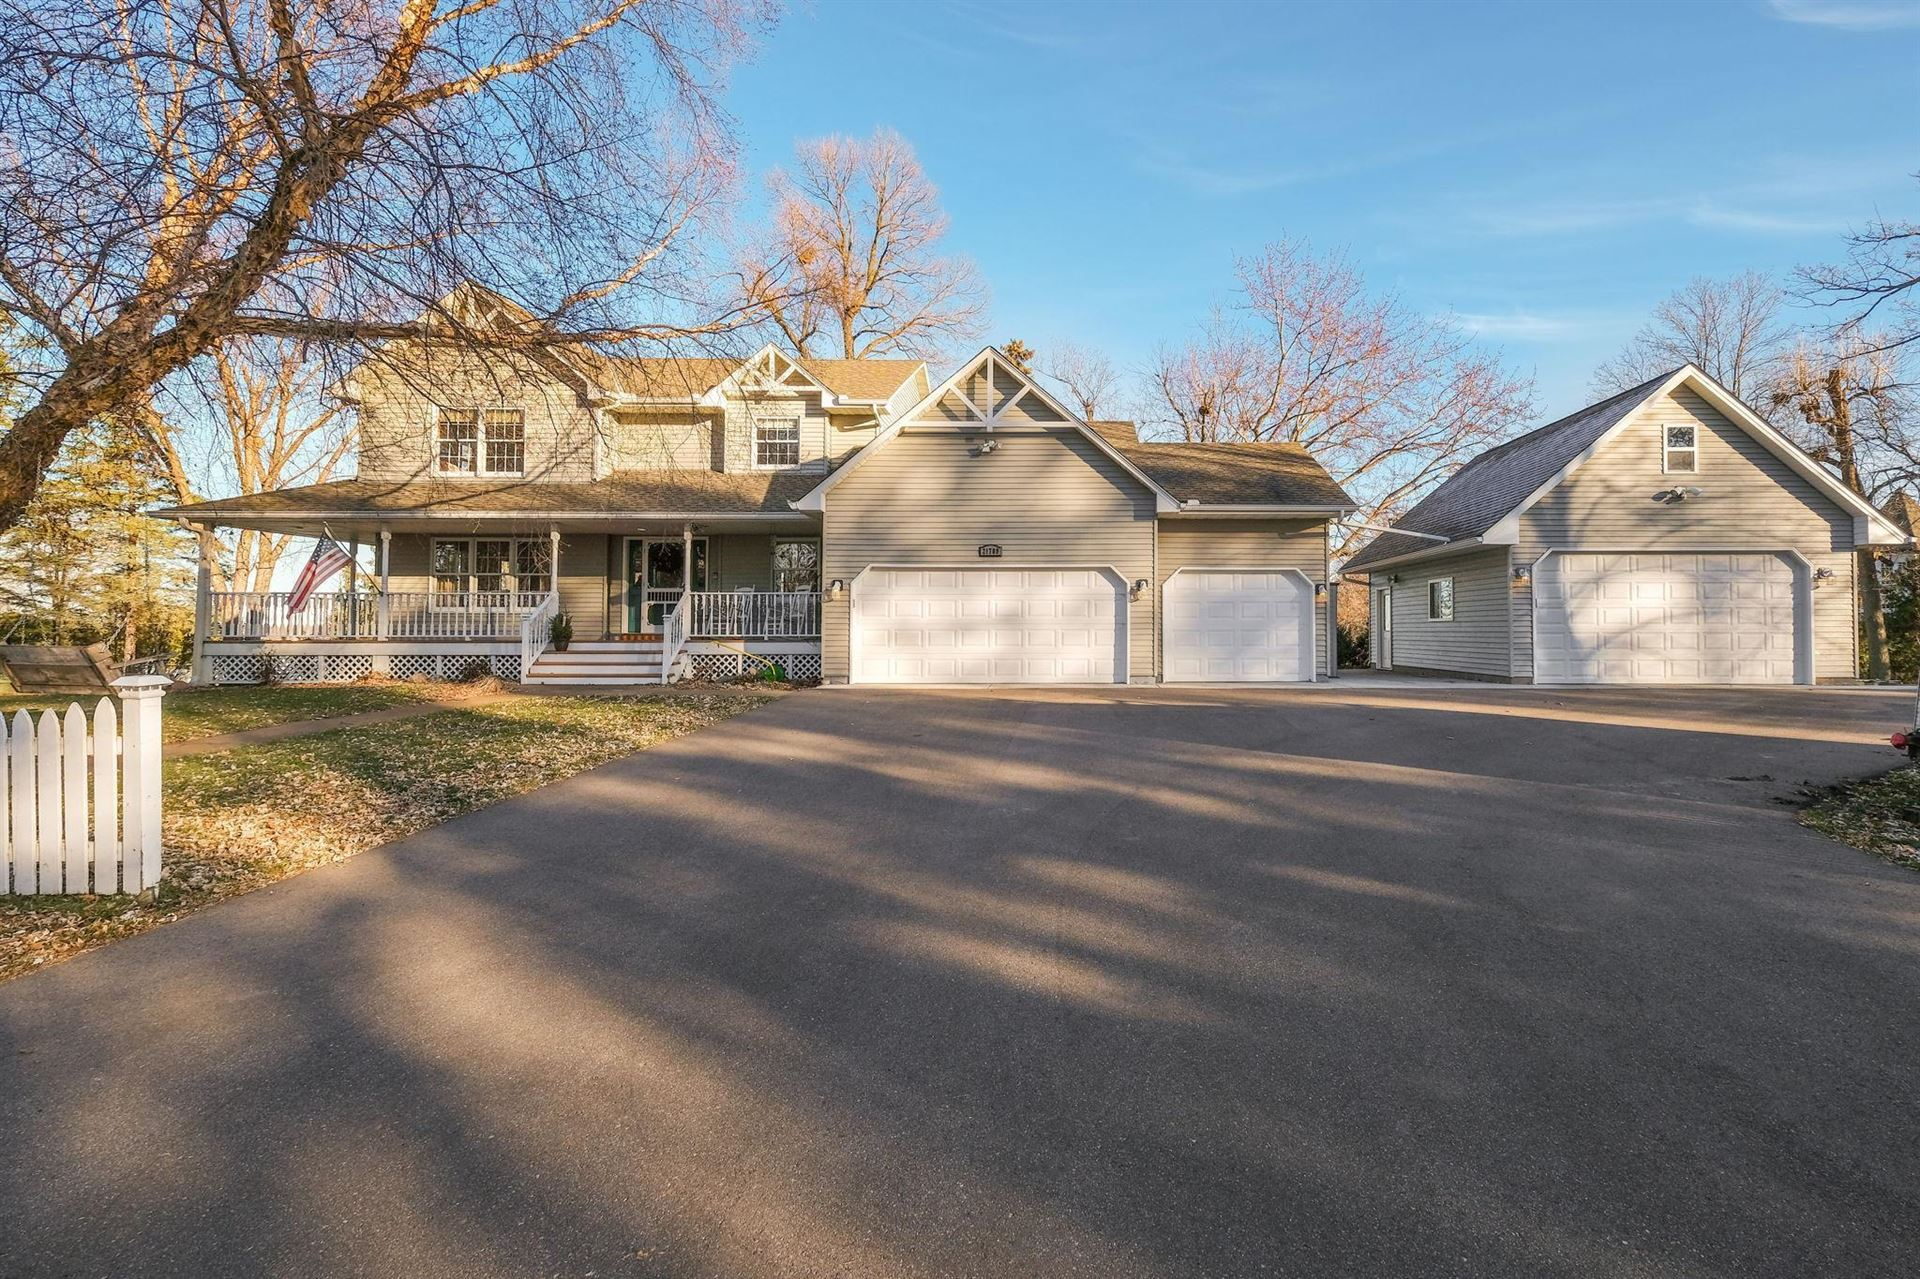 21789 Healy Avenue N, Forest Lake, MN 55025 - MLS#: 5484791